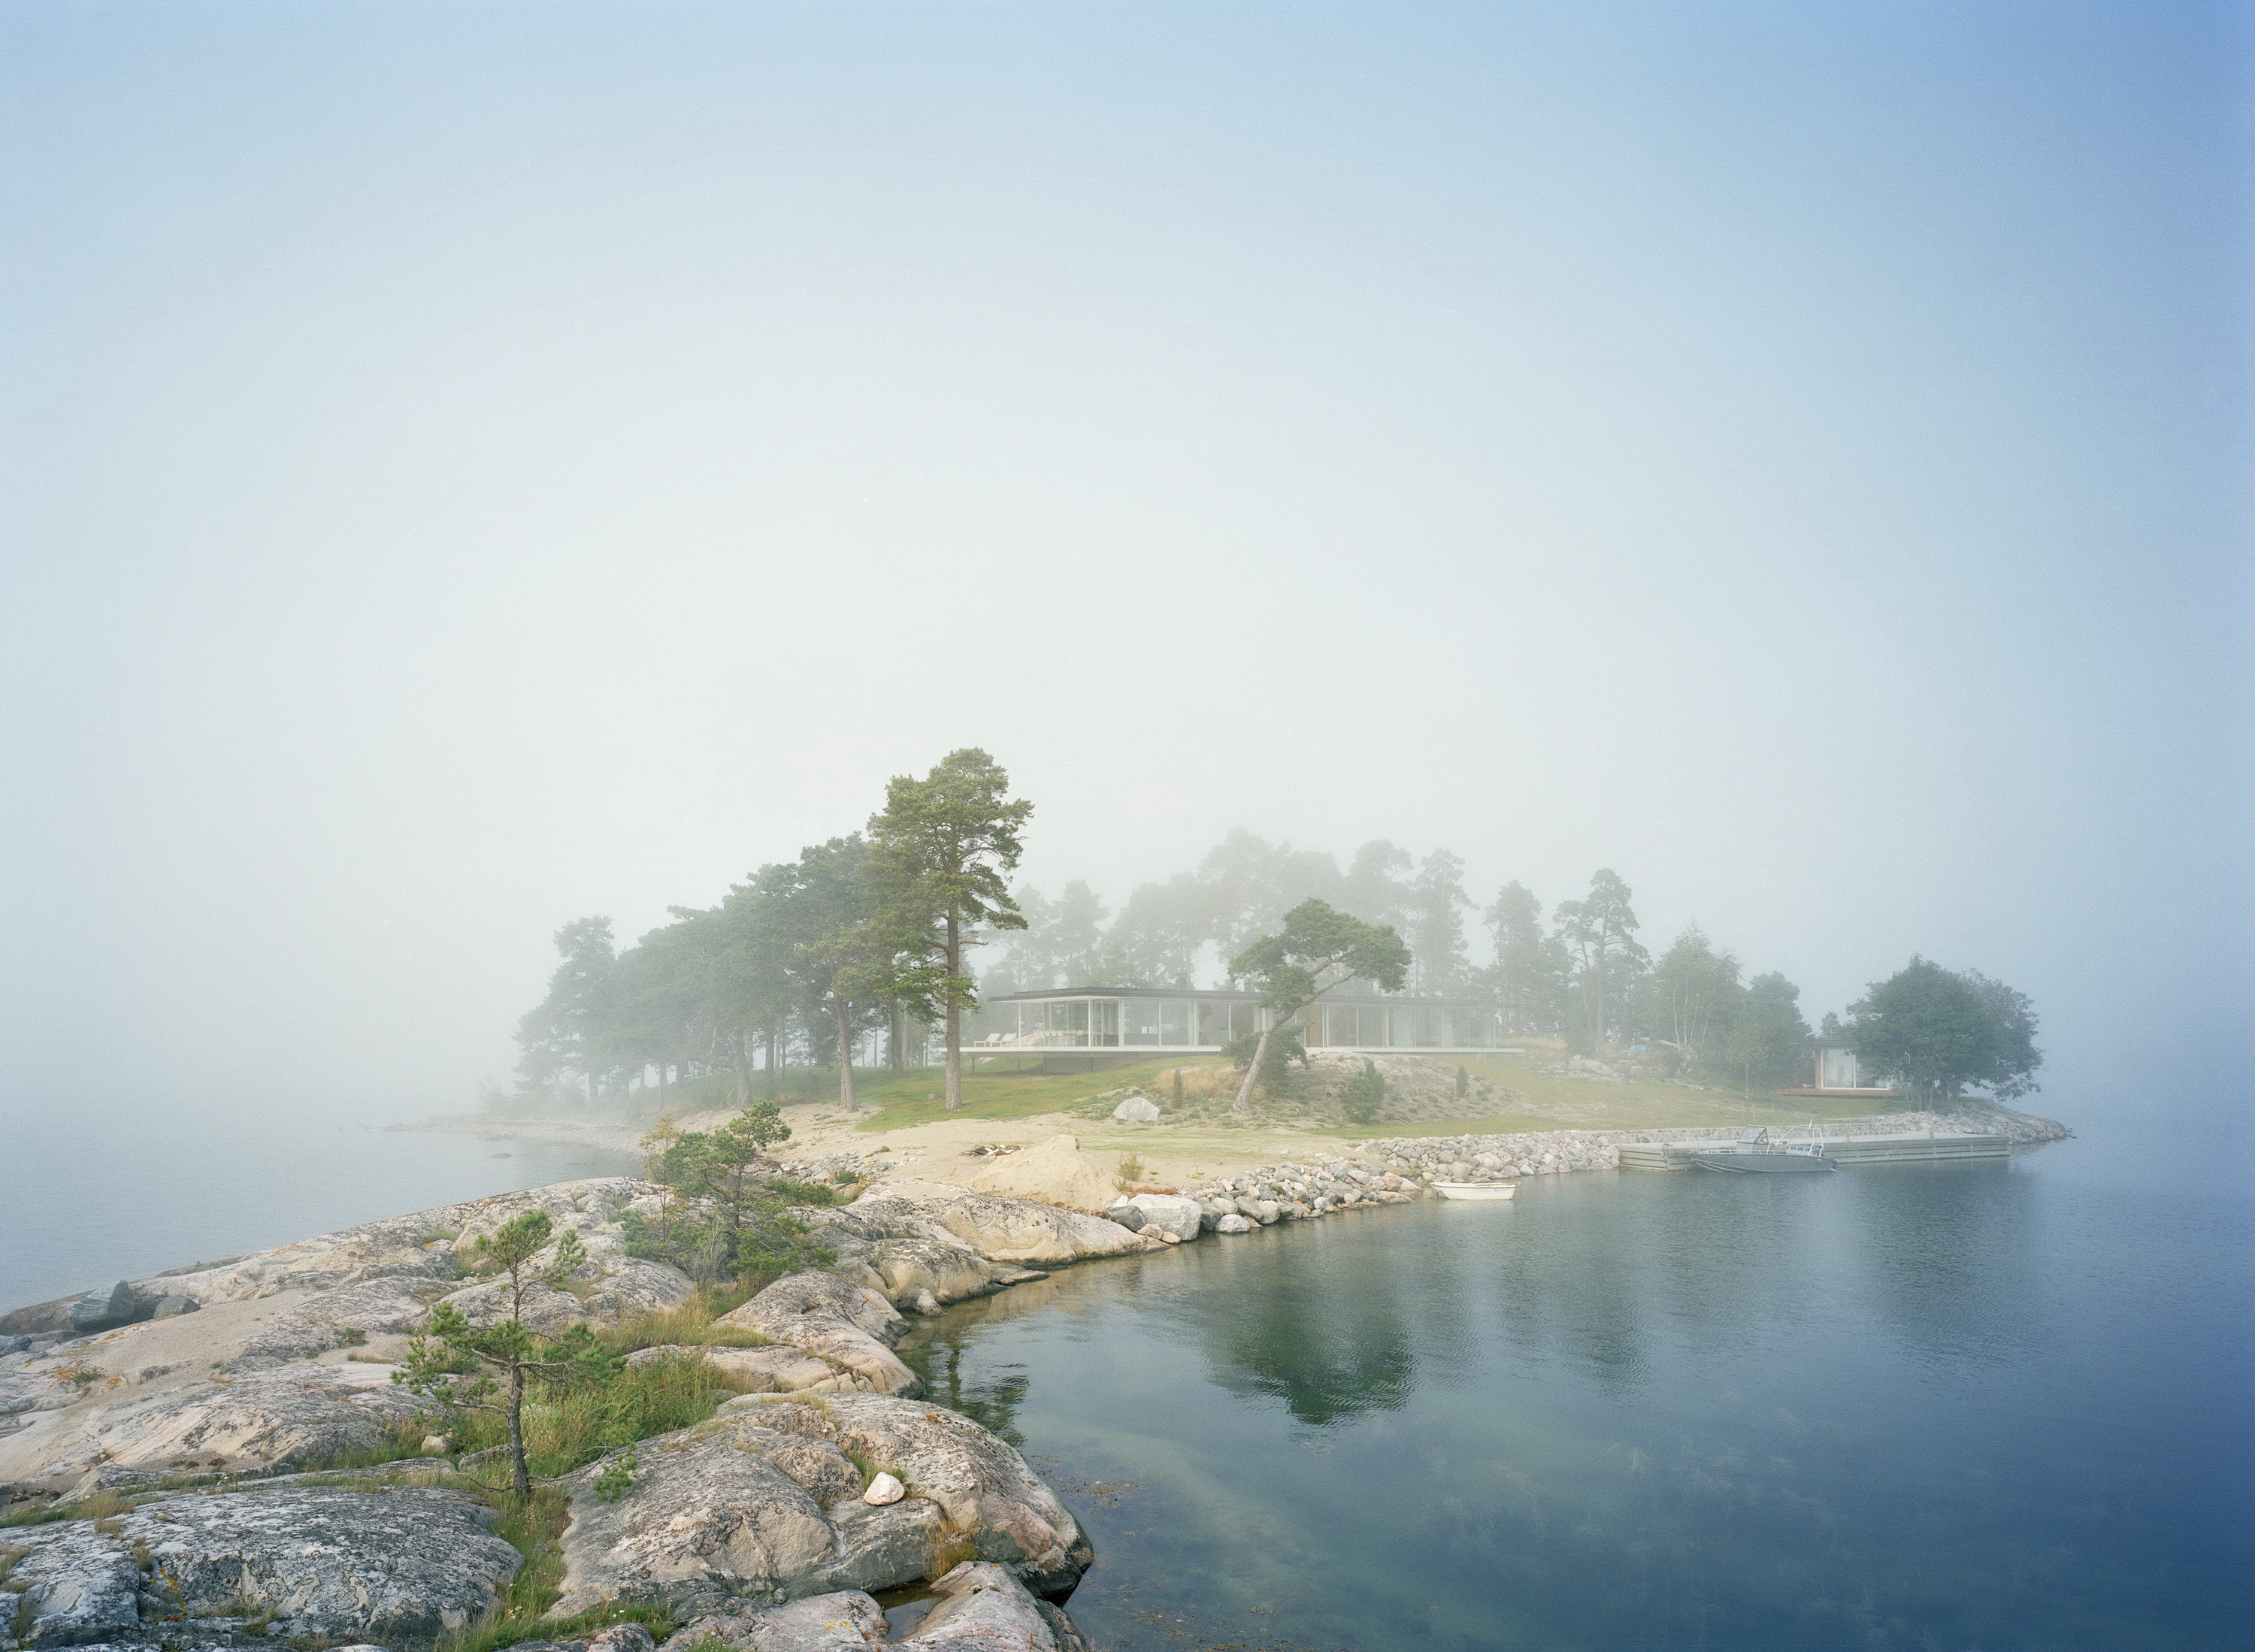 Summer Home on a Private Island – Villa Kymmendö by Jordens Arkitekter